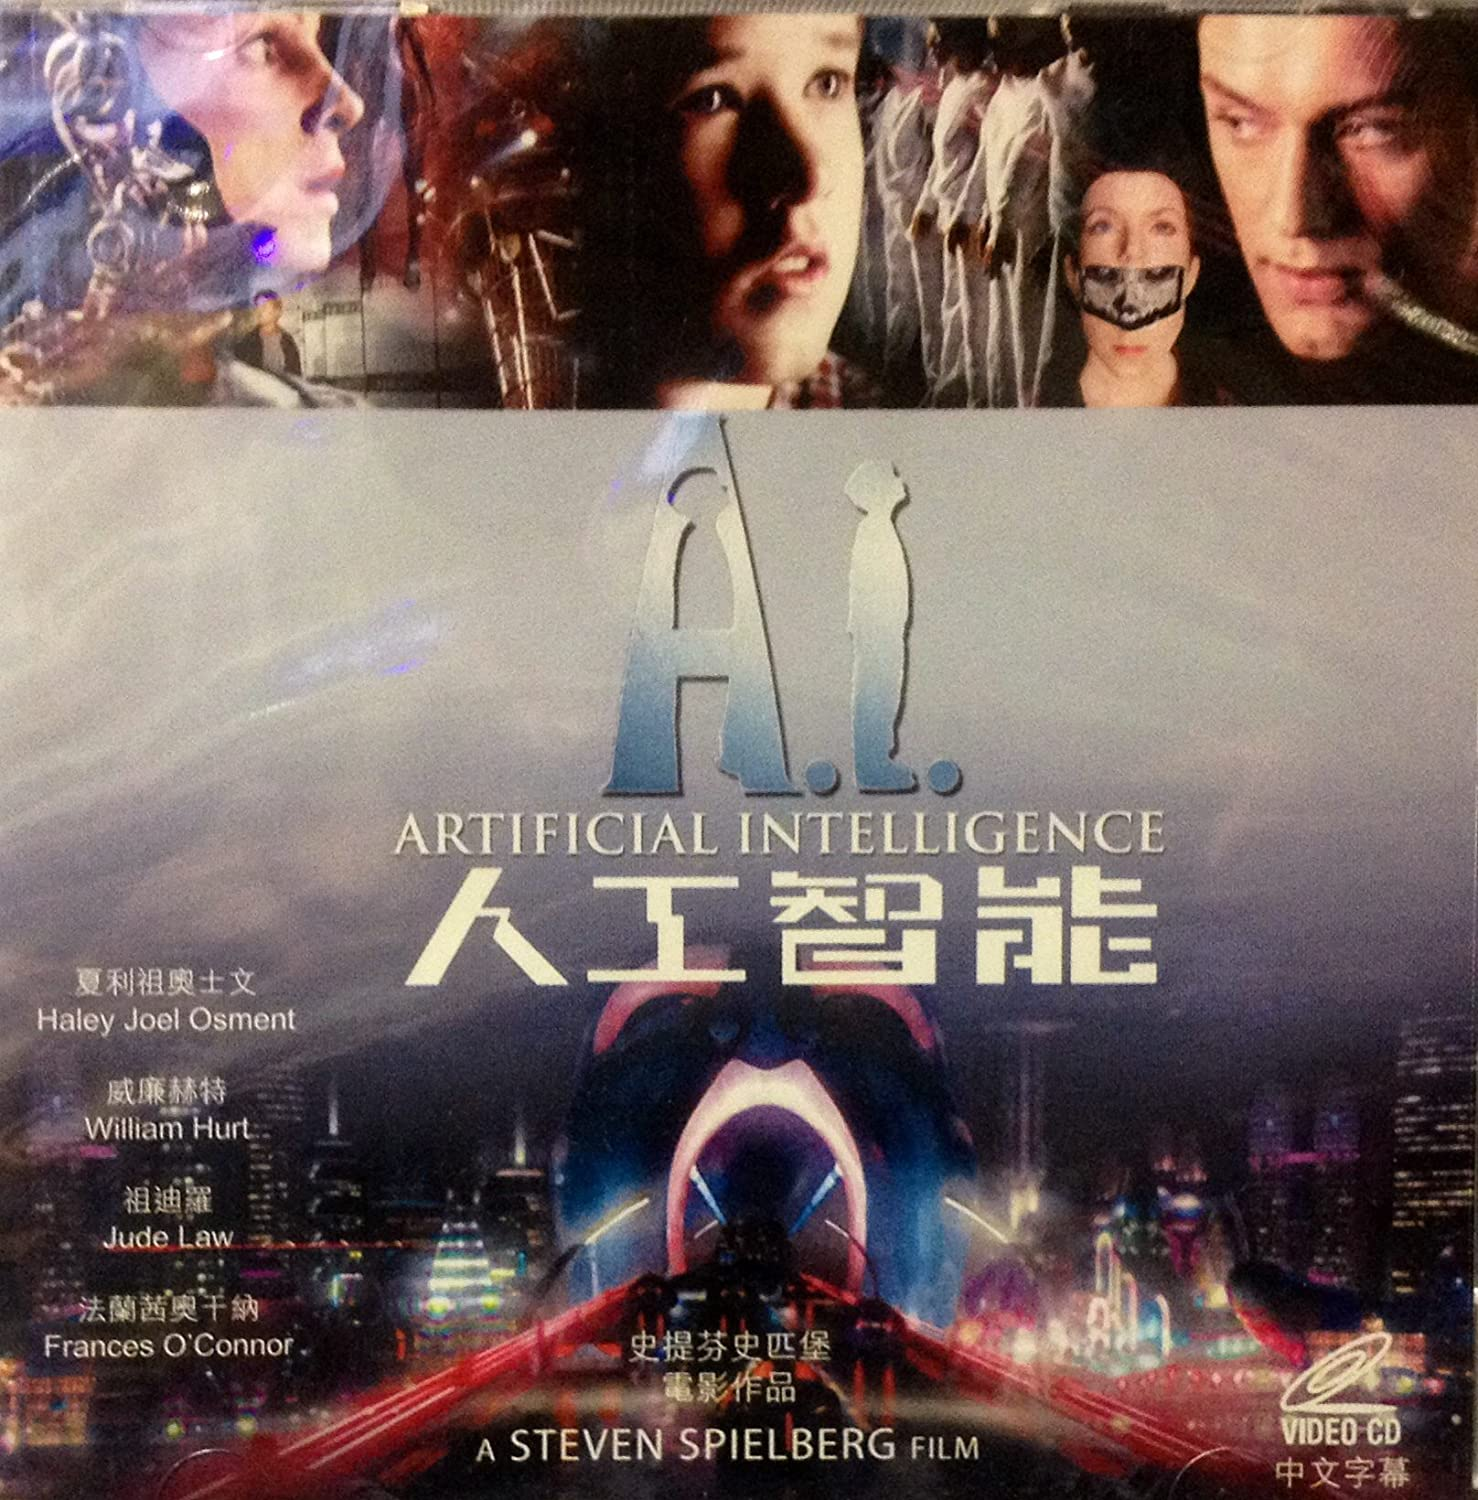 Amazon Com A I Artificial Intelligence 2001 By Warner Bros Version Vcd In English W Chinese Subtitles Imported From Hong Kong Haley Joel Osment Jude Law Frances O Connor Steven Spielberg Movies Tv